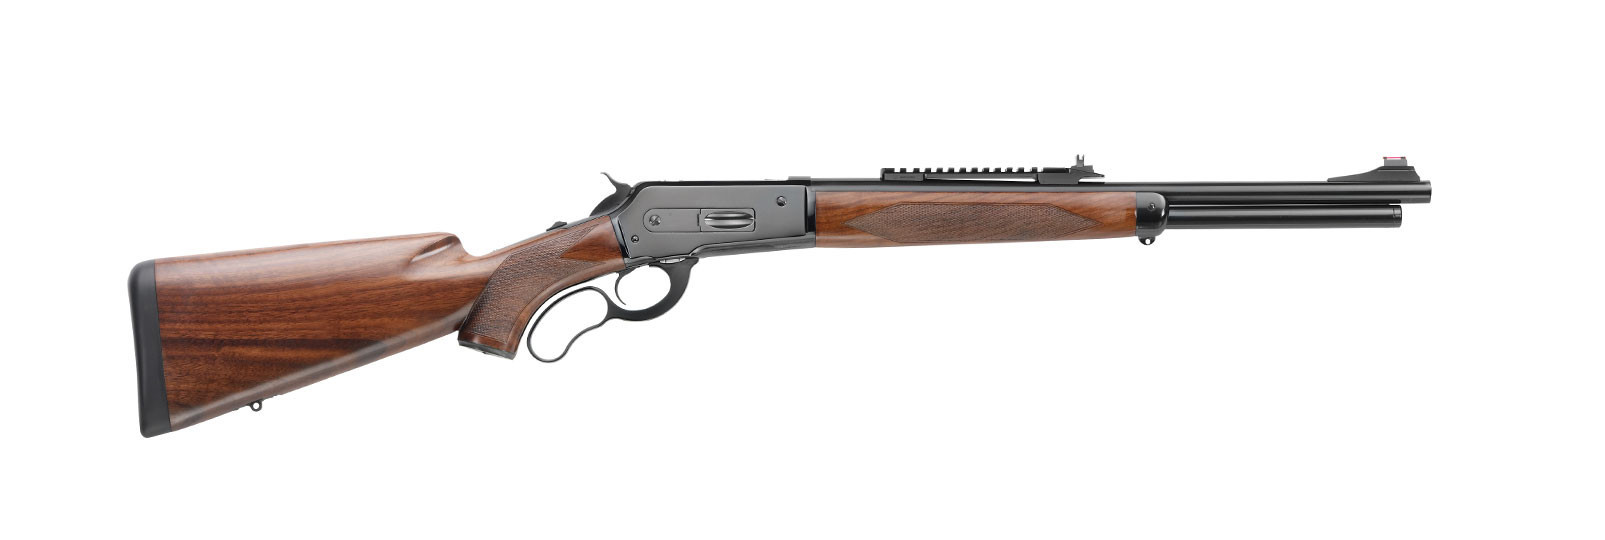 86/71 Lever Action Boarbuster